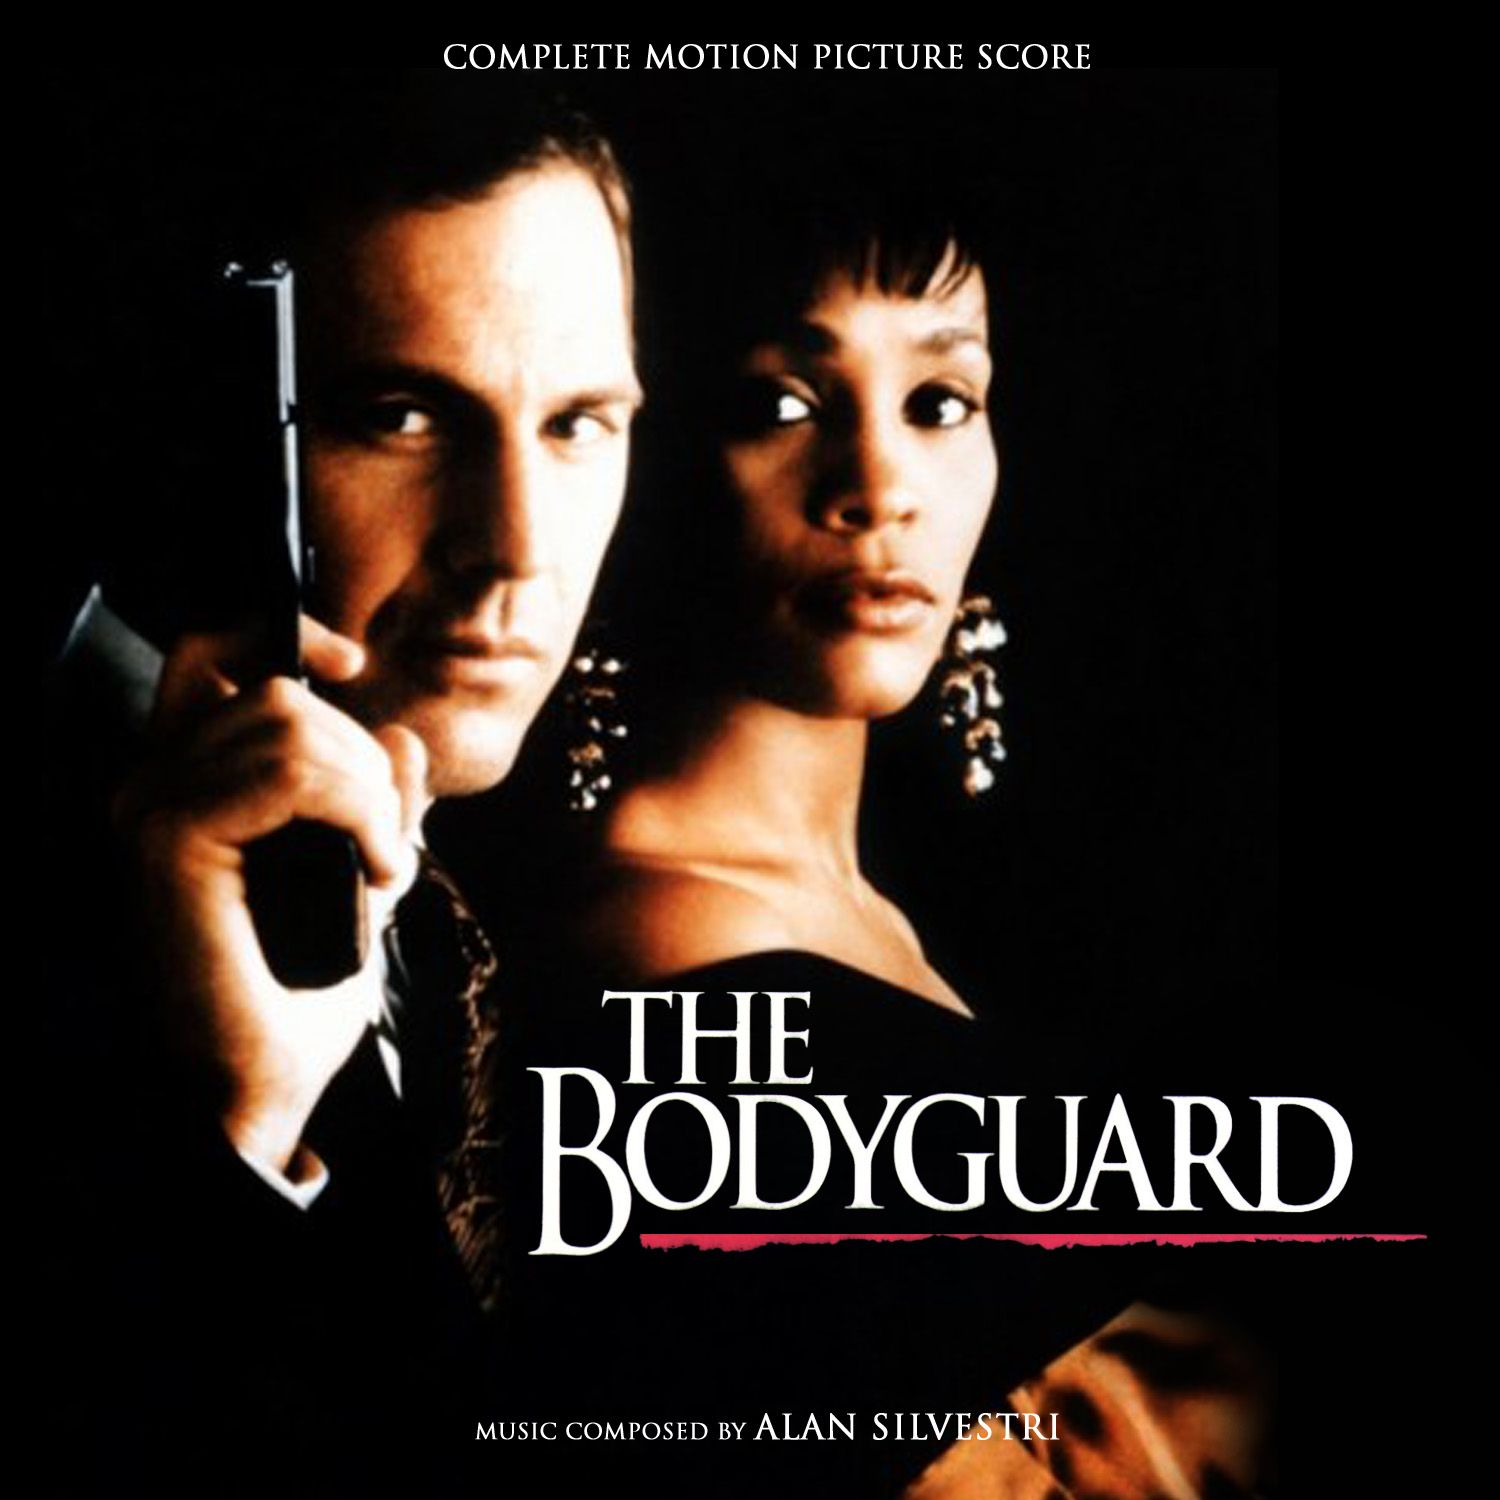 The Bodyguard 1992 Wallpapers - Top Free The Bodyguard 1992 Backgrounds -  WallpaperAccess